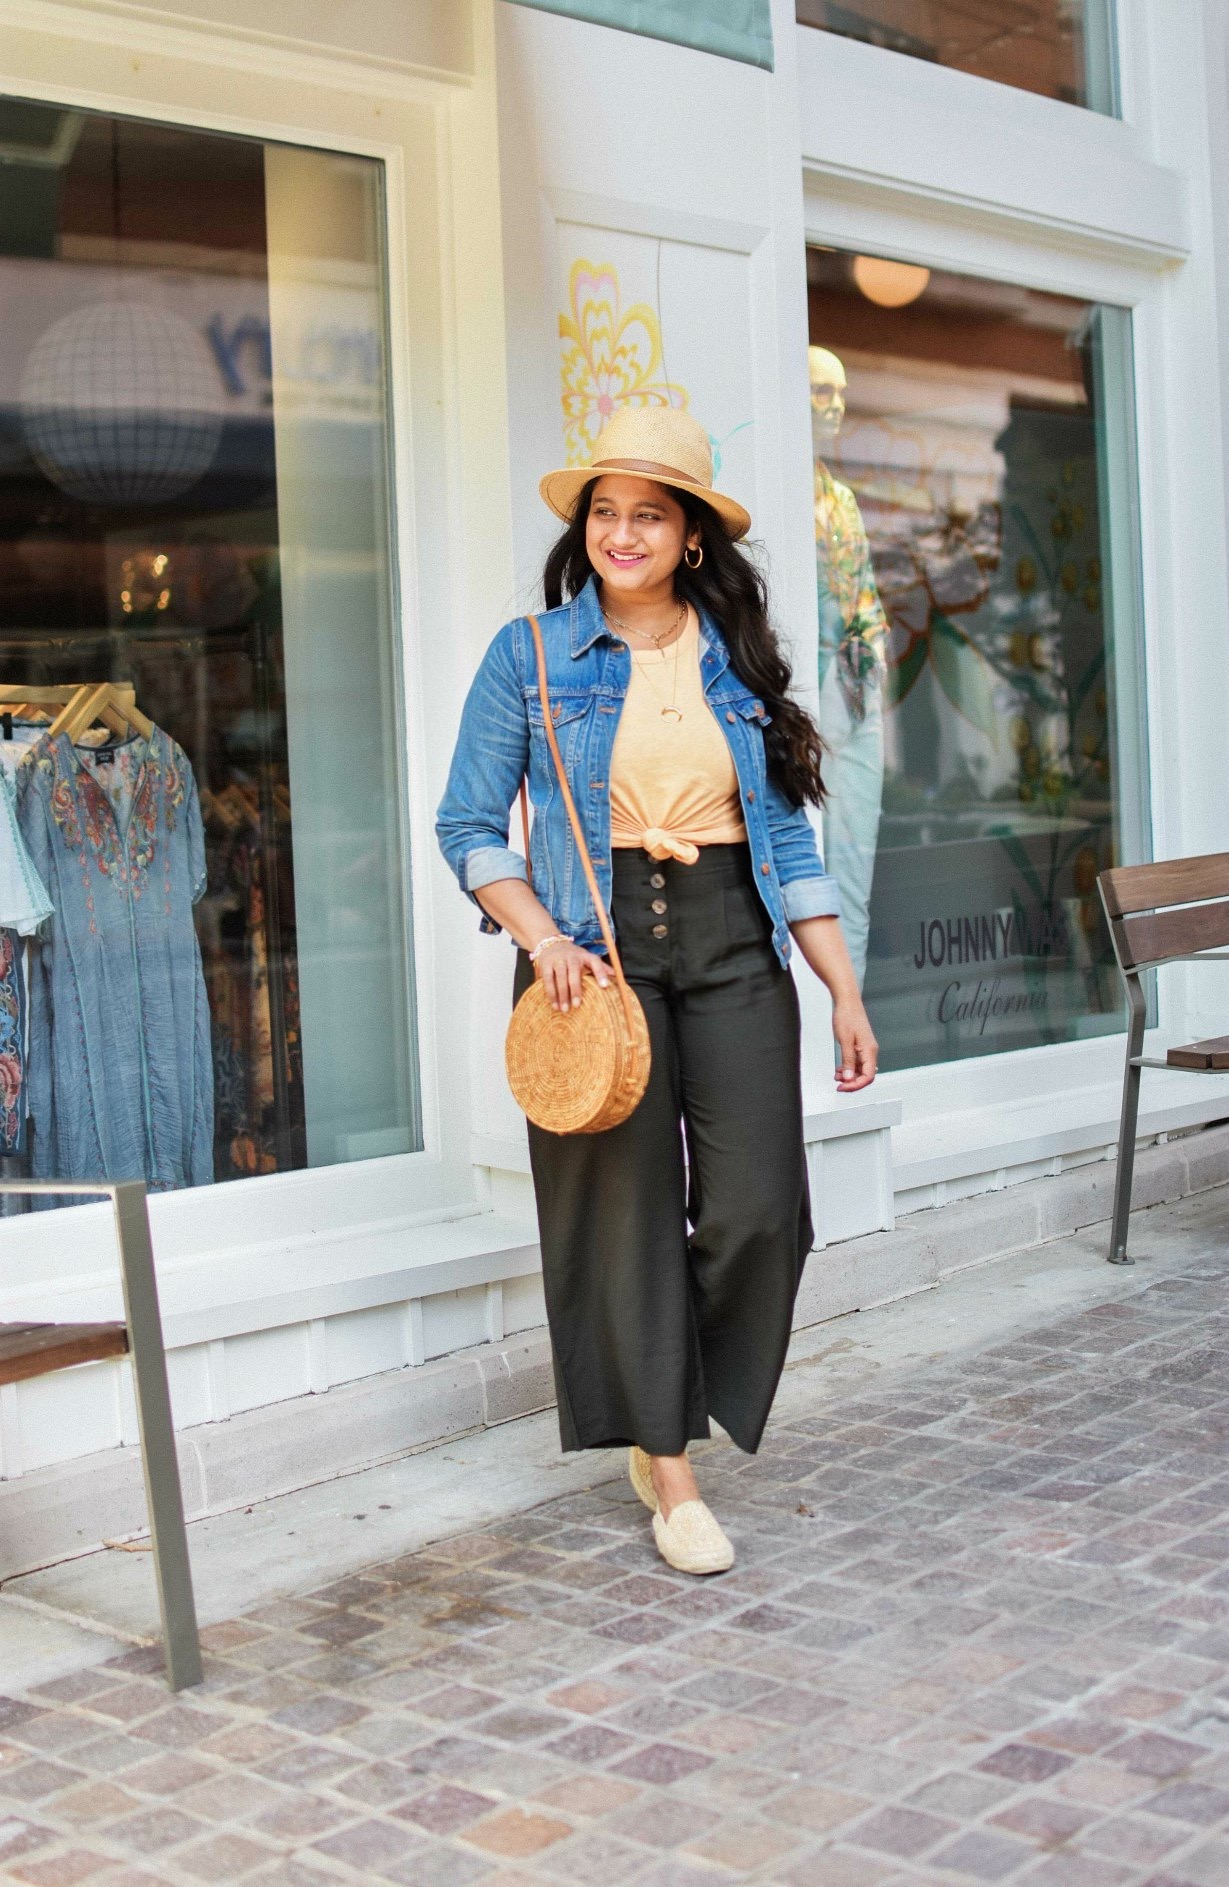 Summer oufit-Loft Fluid pants, Gorjana chain necklace, Starw hat, Manebi Raffia Espdrilles10